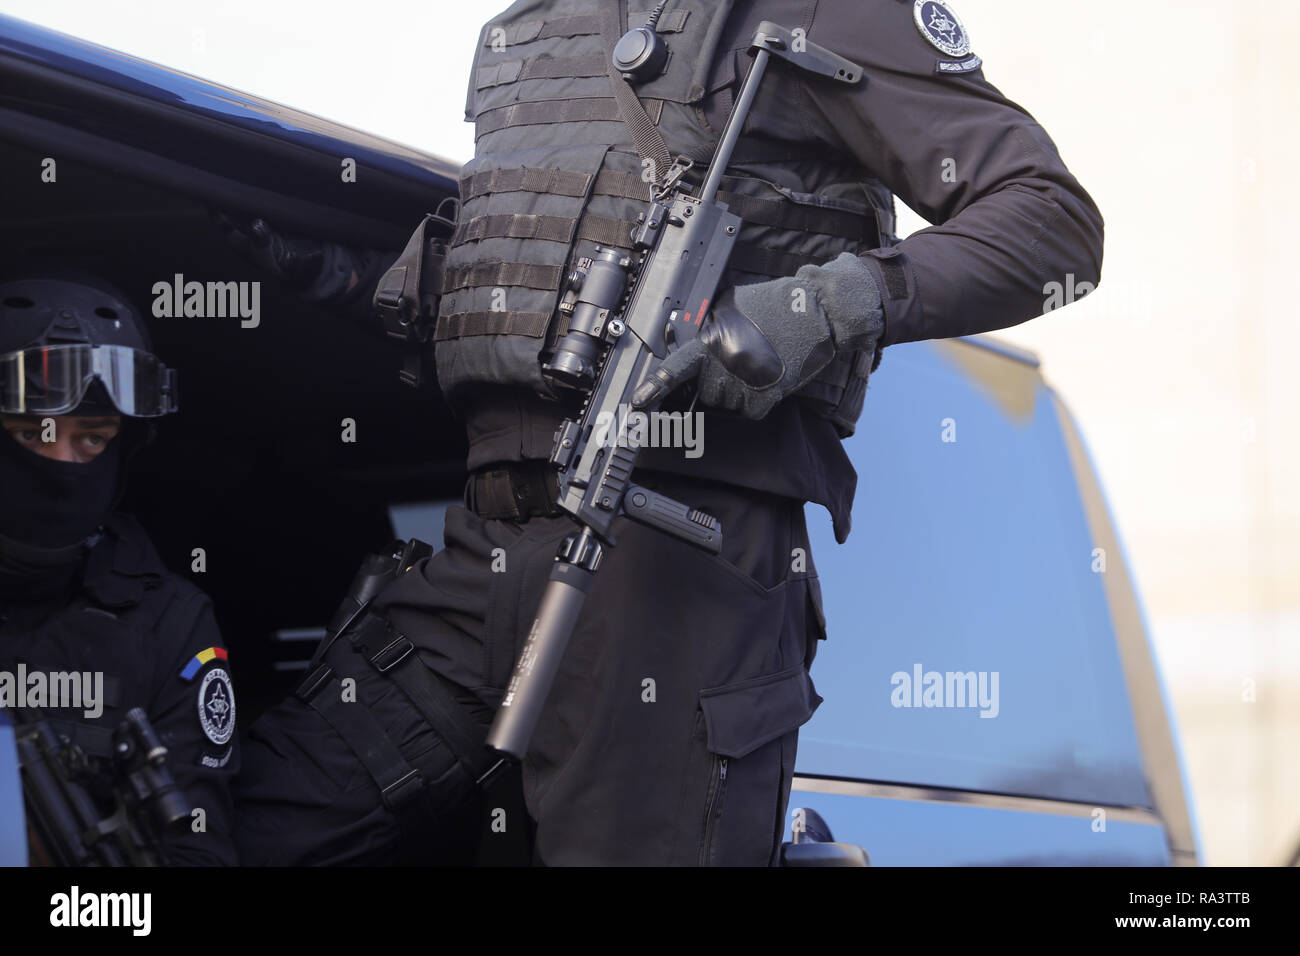 Bucharest, Romania - December 1, 2018: Anti terrorist officer from the Romanian Intelligence Service, armed with a MP7 Heckler & Koch Submachine Gun,  - Stock Image